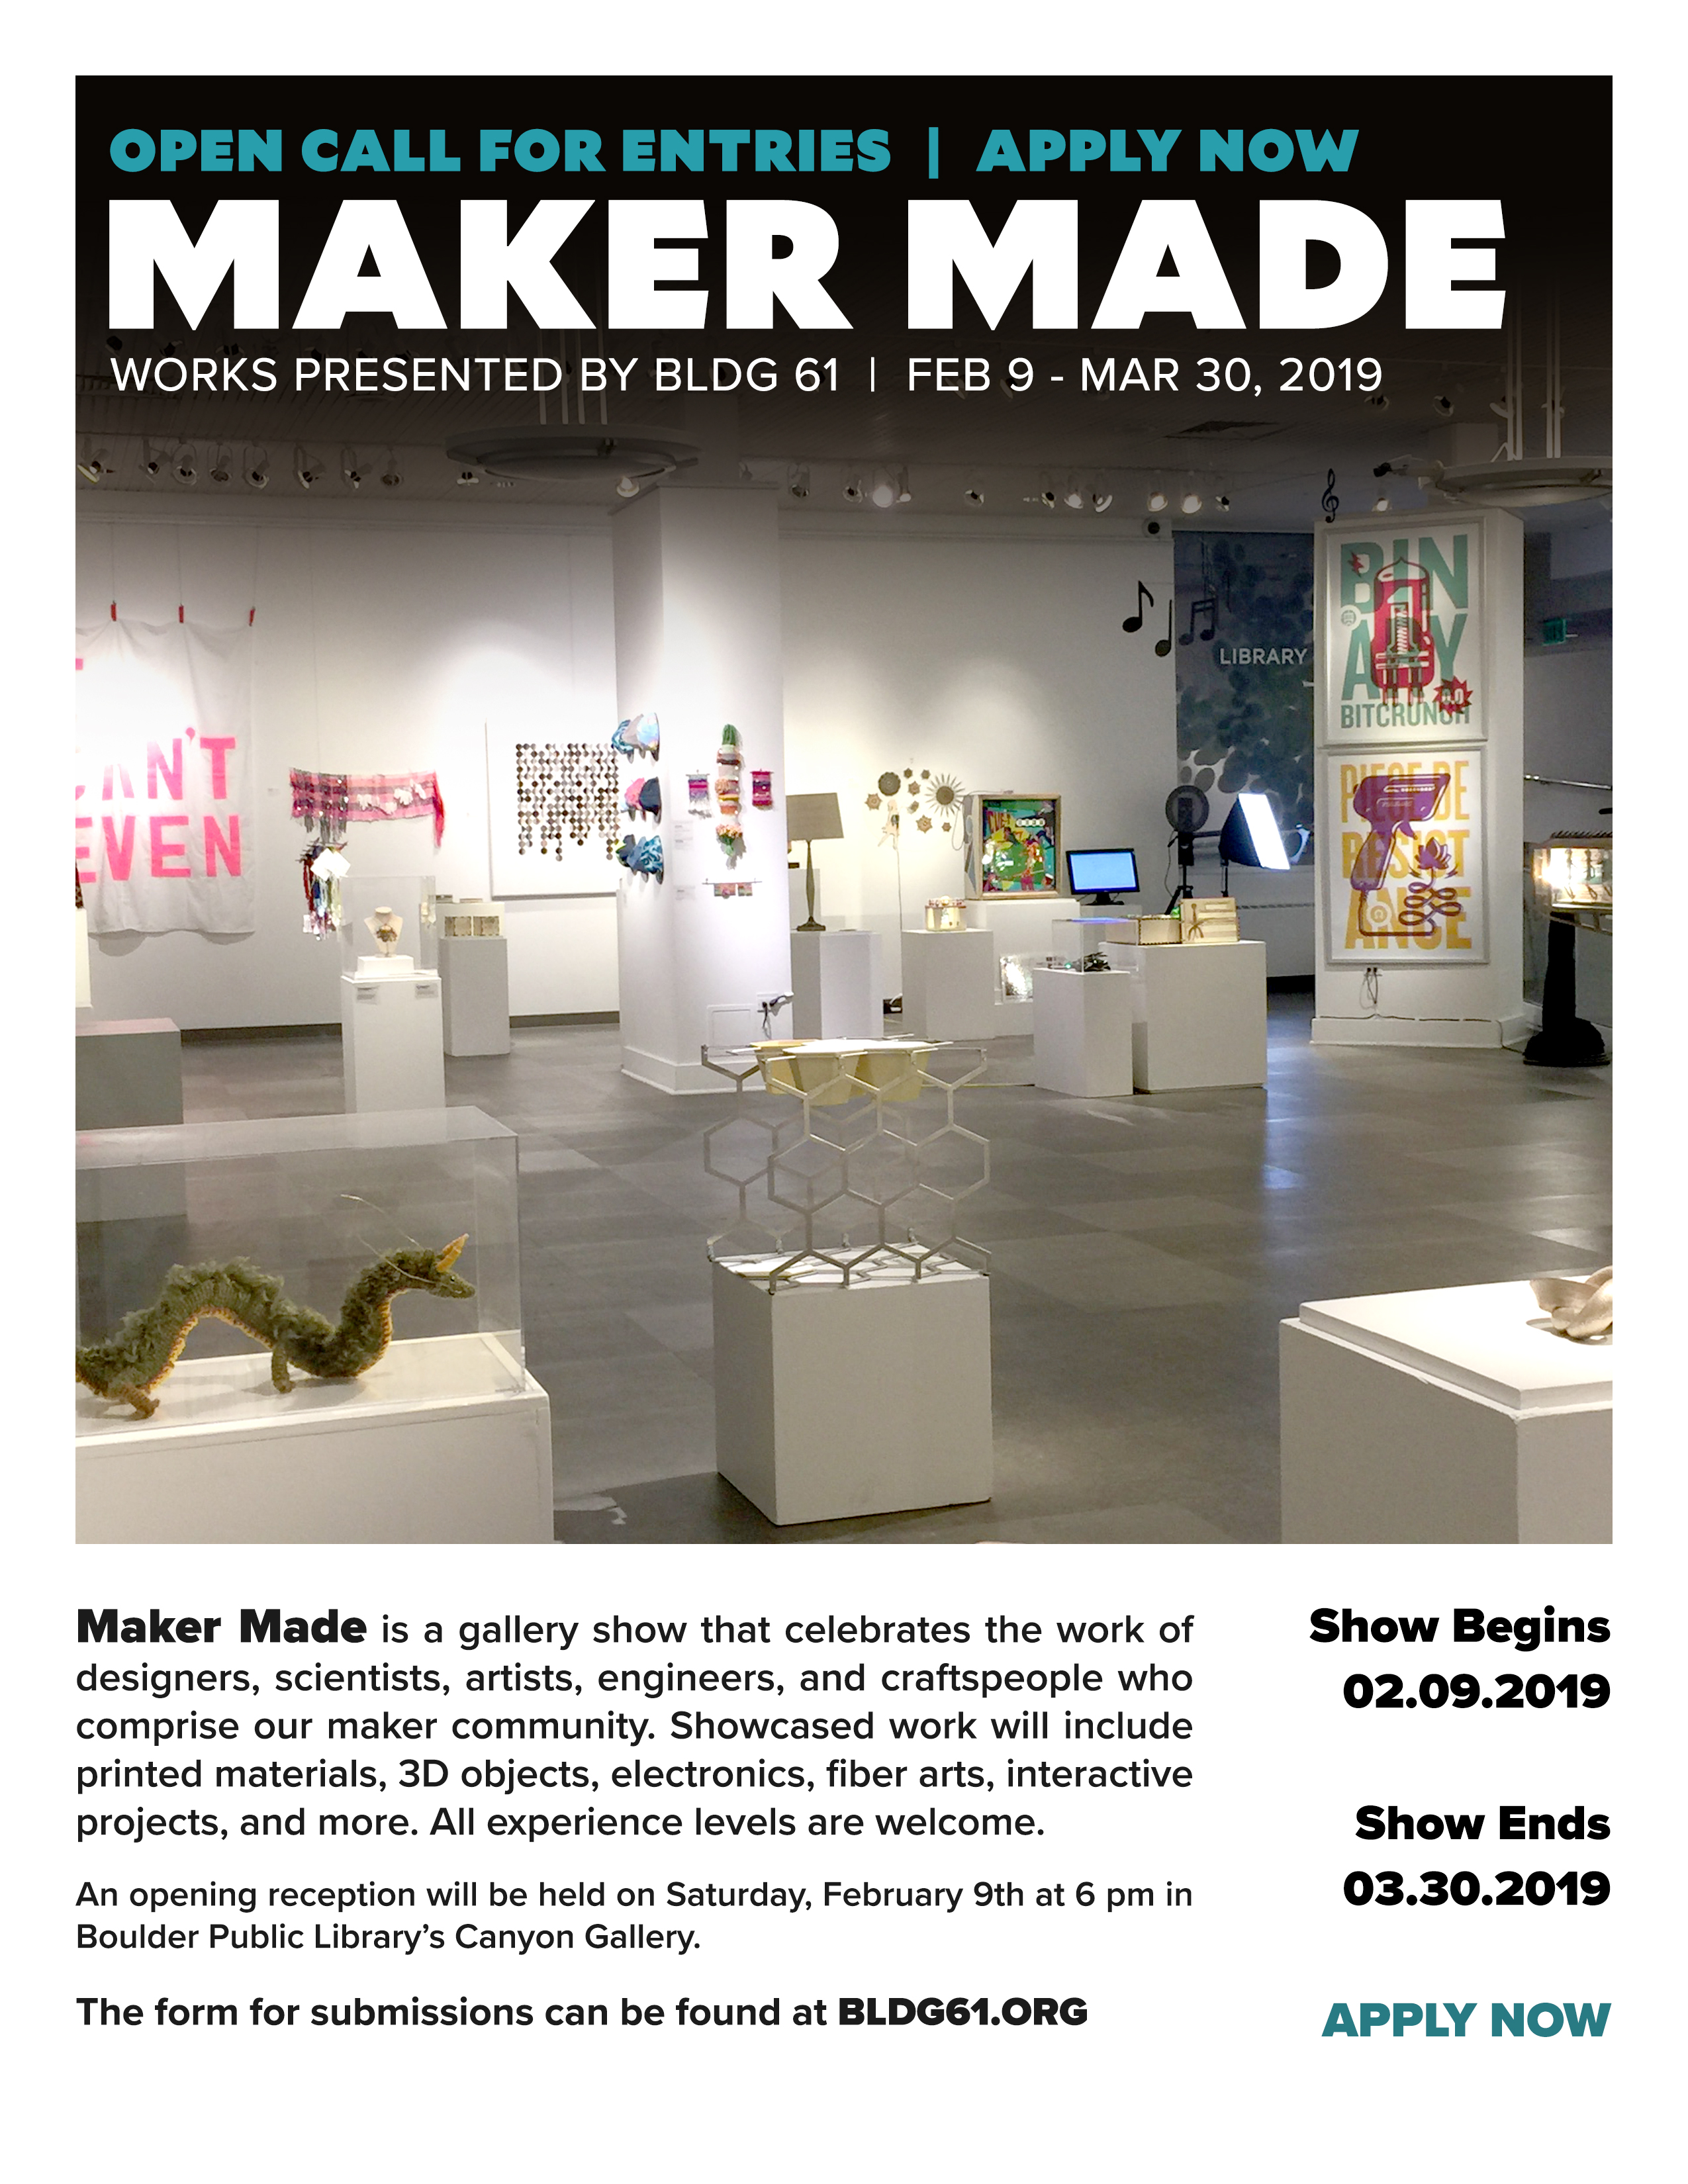 MAKER MADE OPENING